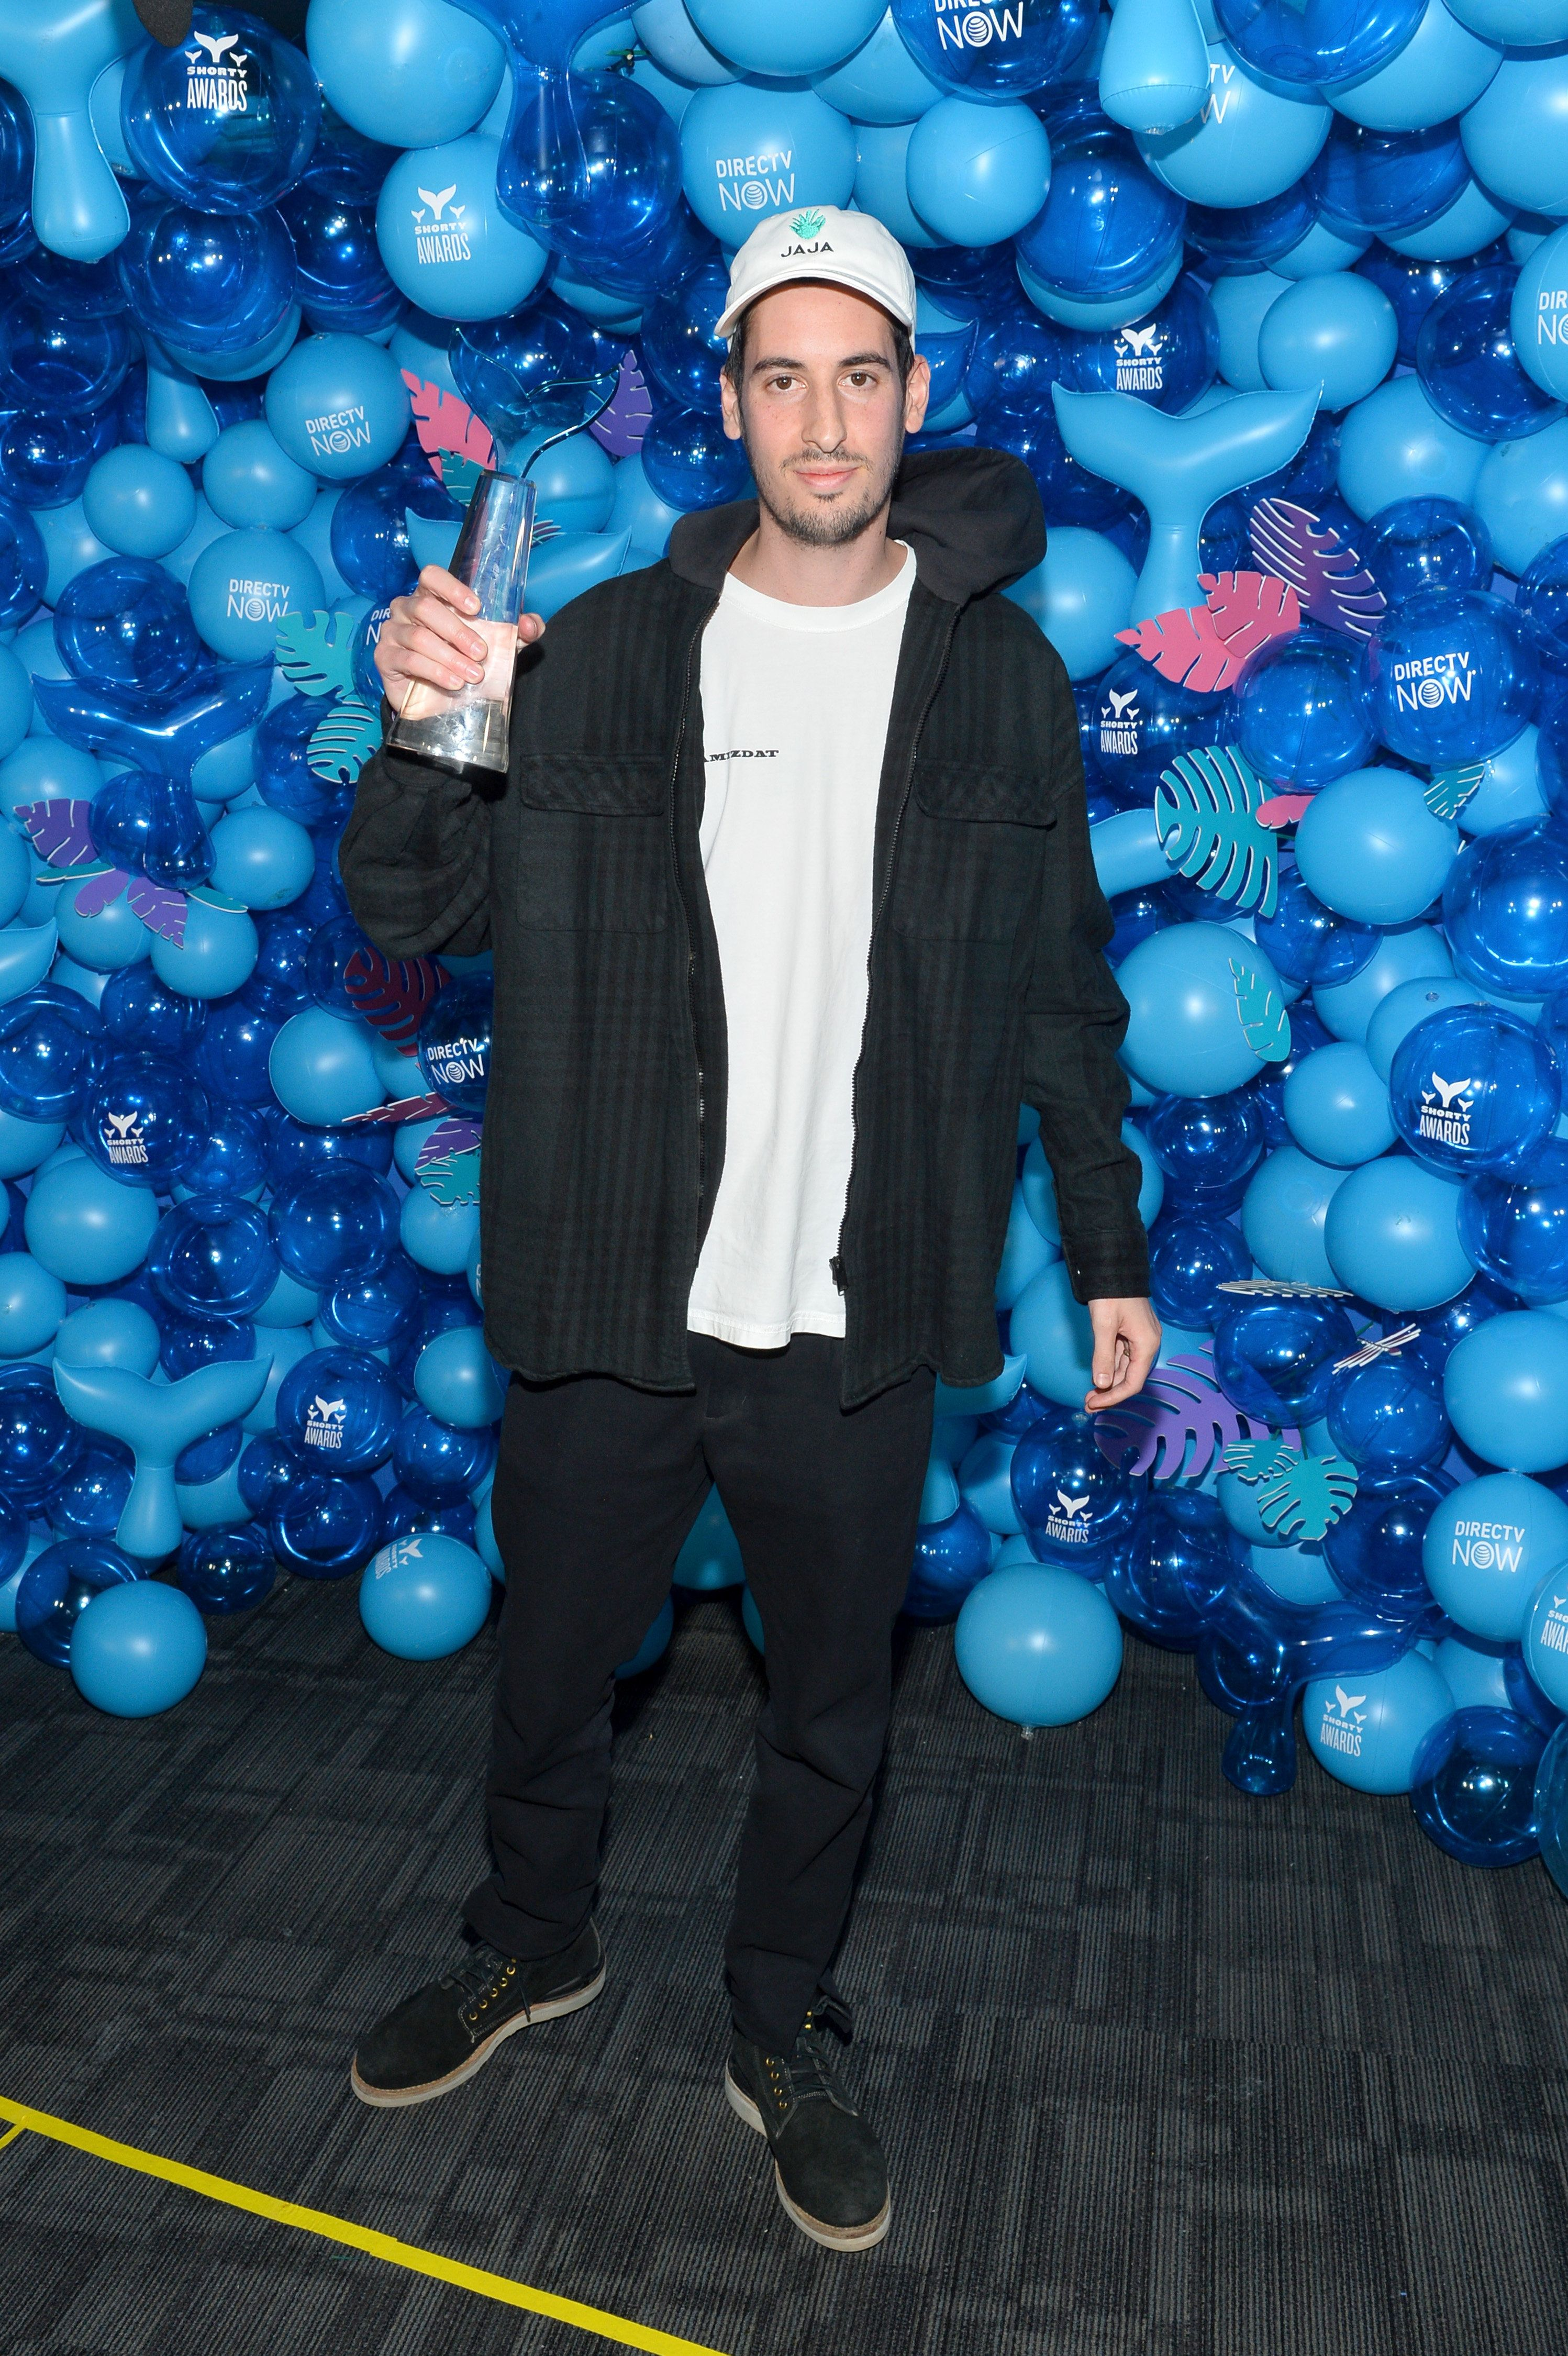 NEW YORK, NY - APRIL 15:  Elliot Tebele poses with the award for Best Meme/Parody Account for fuckjerry during the 10th Annual Shorty Awards at PlayStation Theater on April 15, 2018 in New York City.  (Photo by Noam Galai/Getty Images for Shorty Awards)